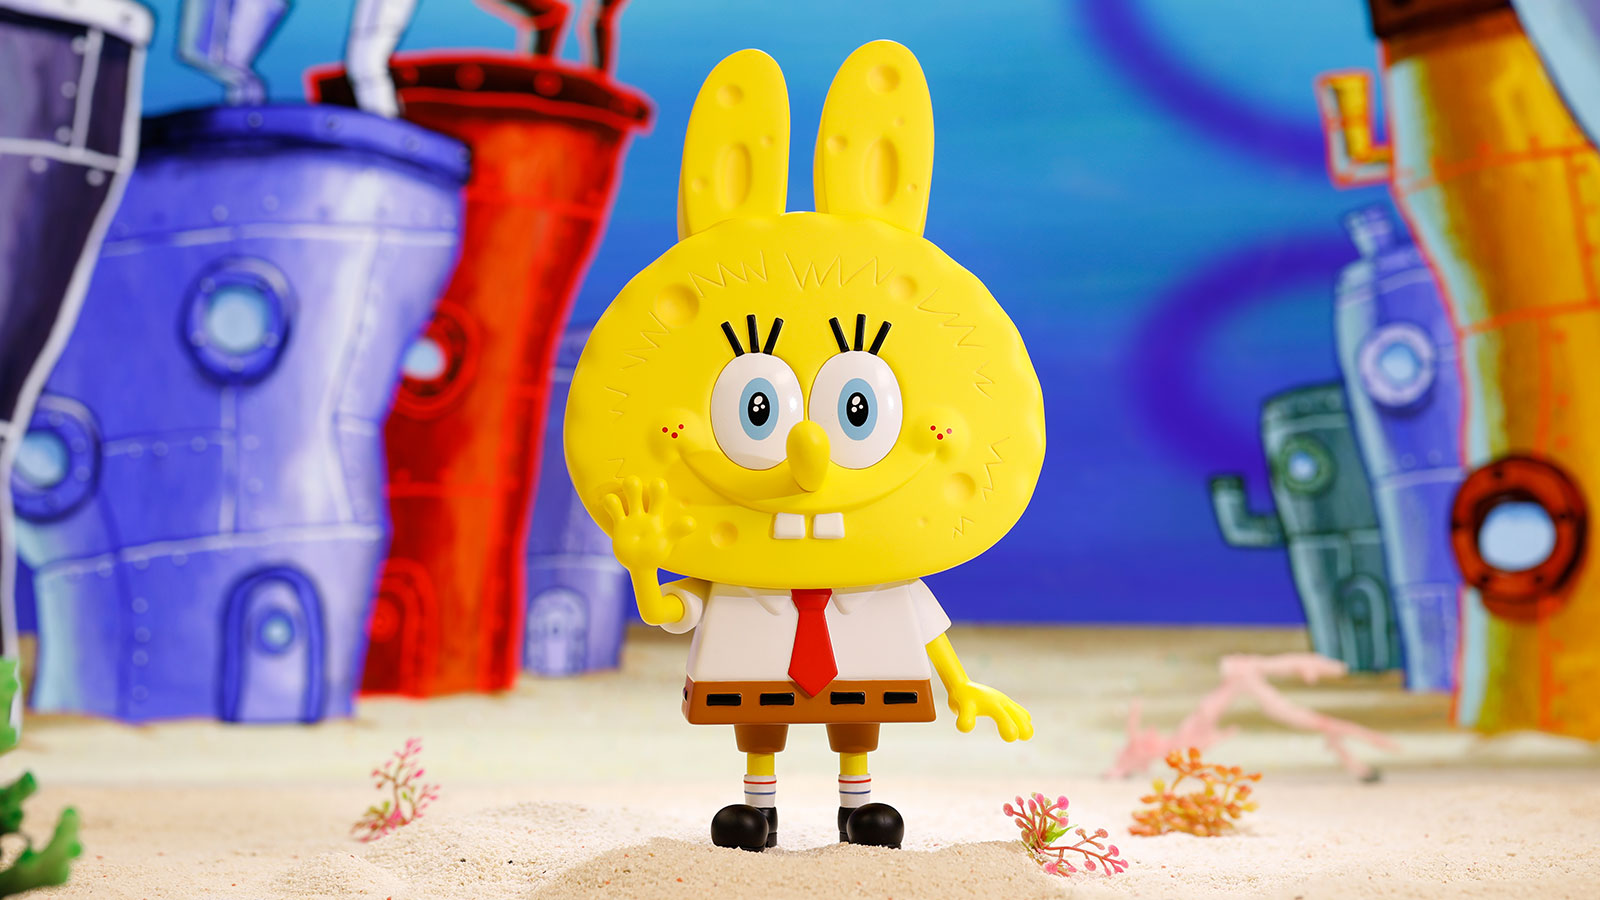 https://cdn.shopify.com/s/files/1/0339/7091/3412/files/2-1_POP_MART_LABUBU_x_SpongeBob_Figurine.jpg?v=1619602161